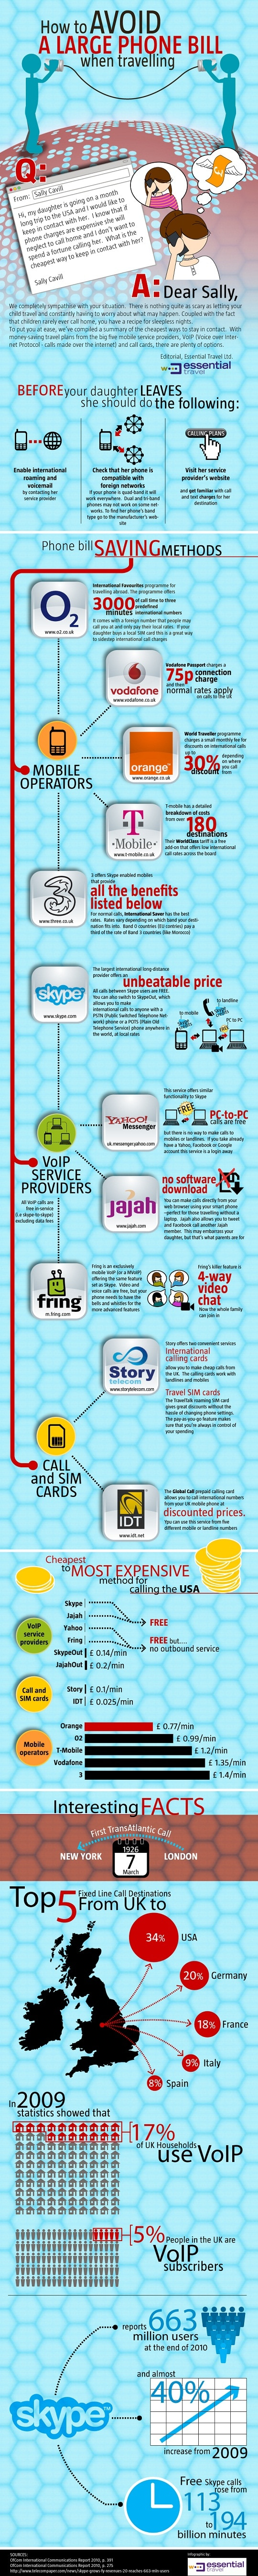 How To: Avoid Large Phone Bills When Traveling [Infographic]